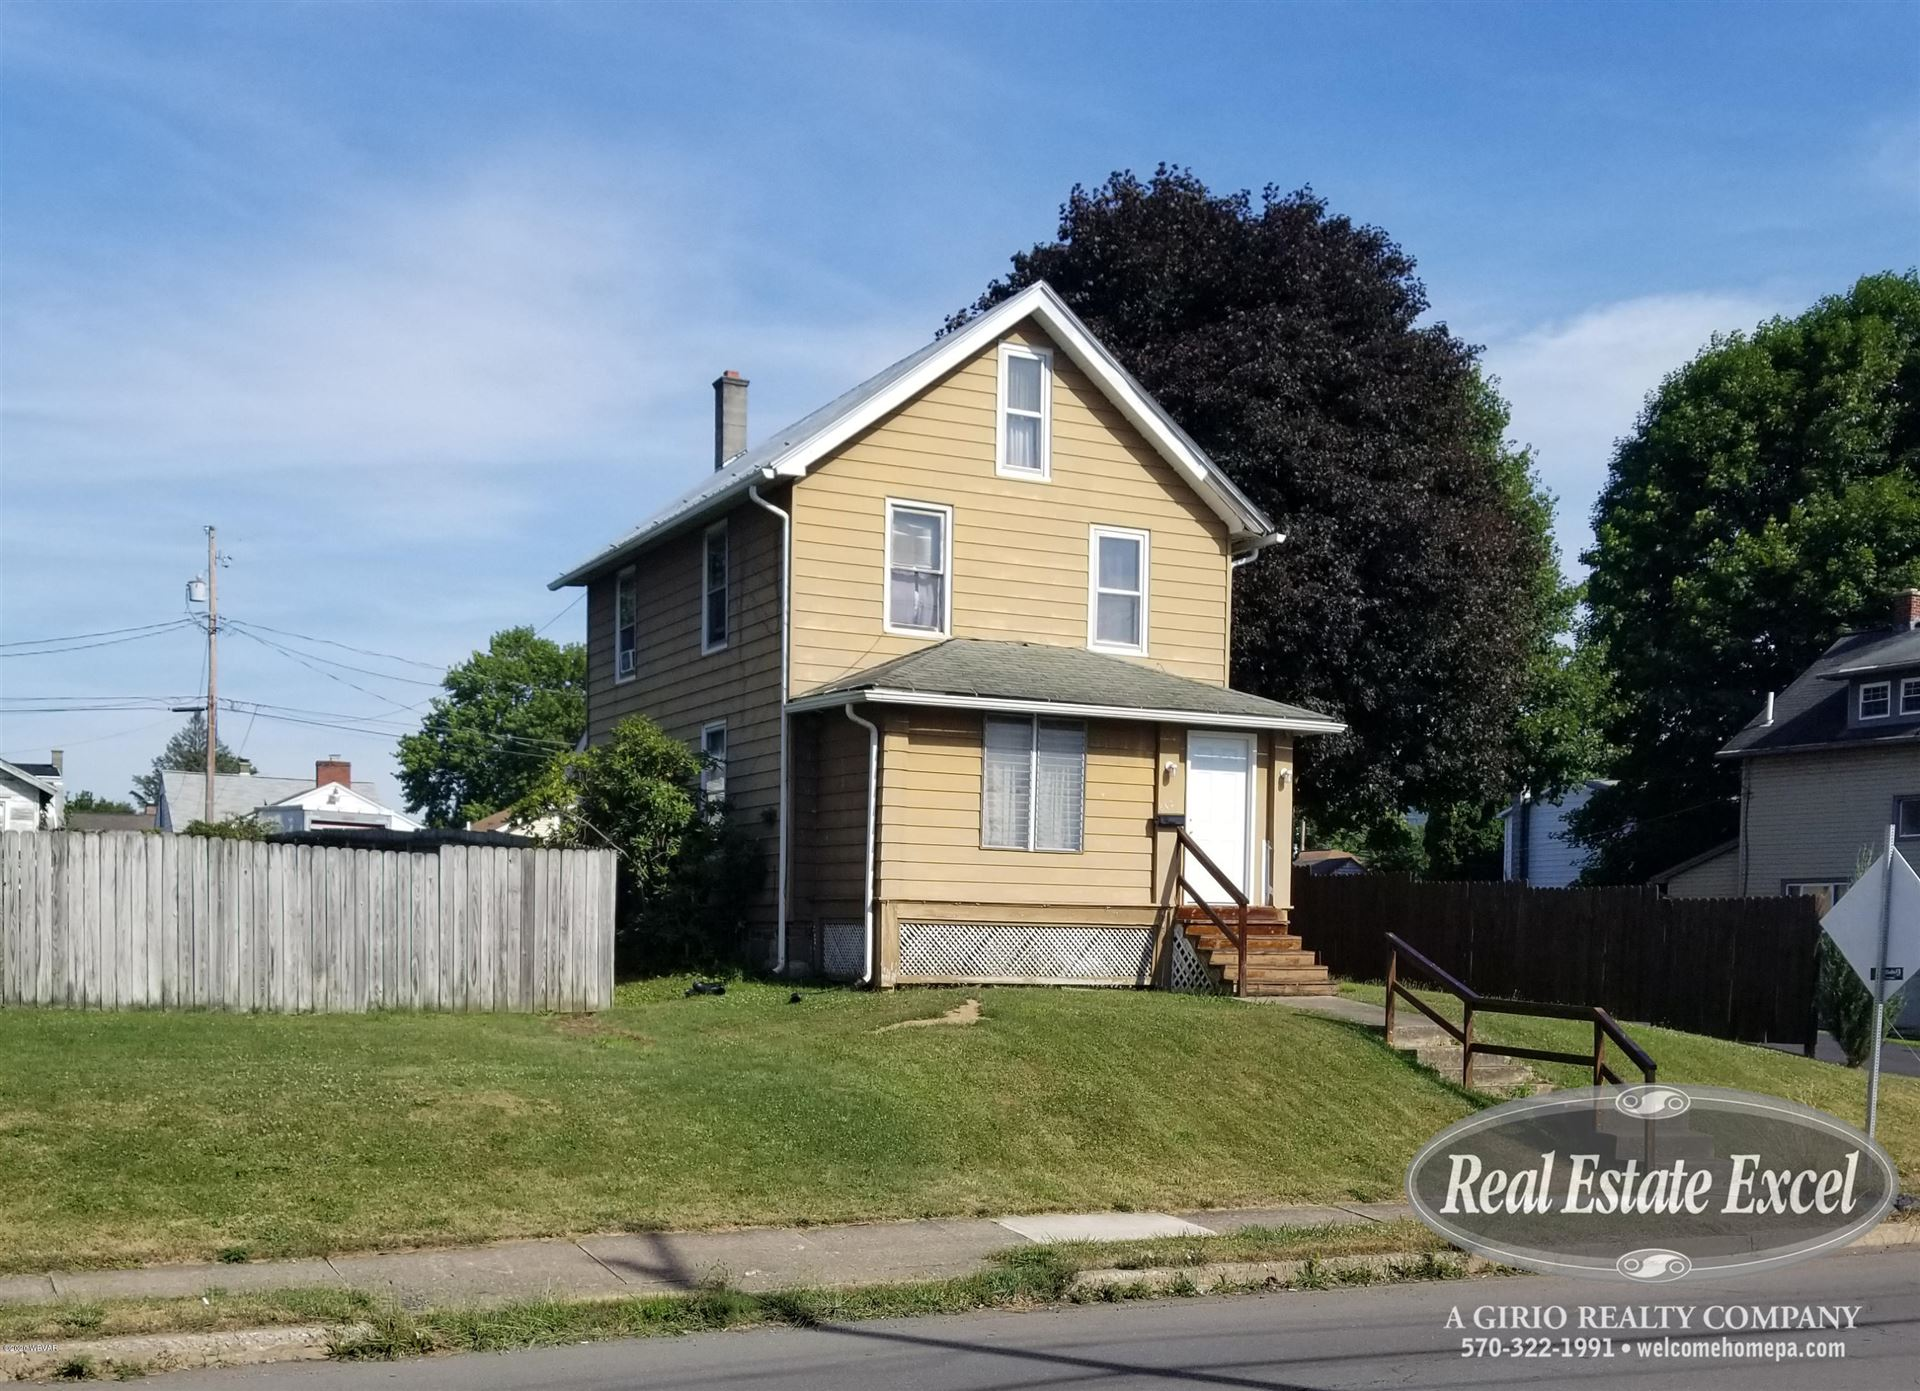 812 NORTHWAY ROAD, Williamsport, PA 17701 - #: WB-90702